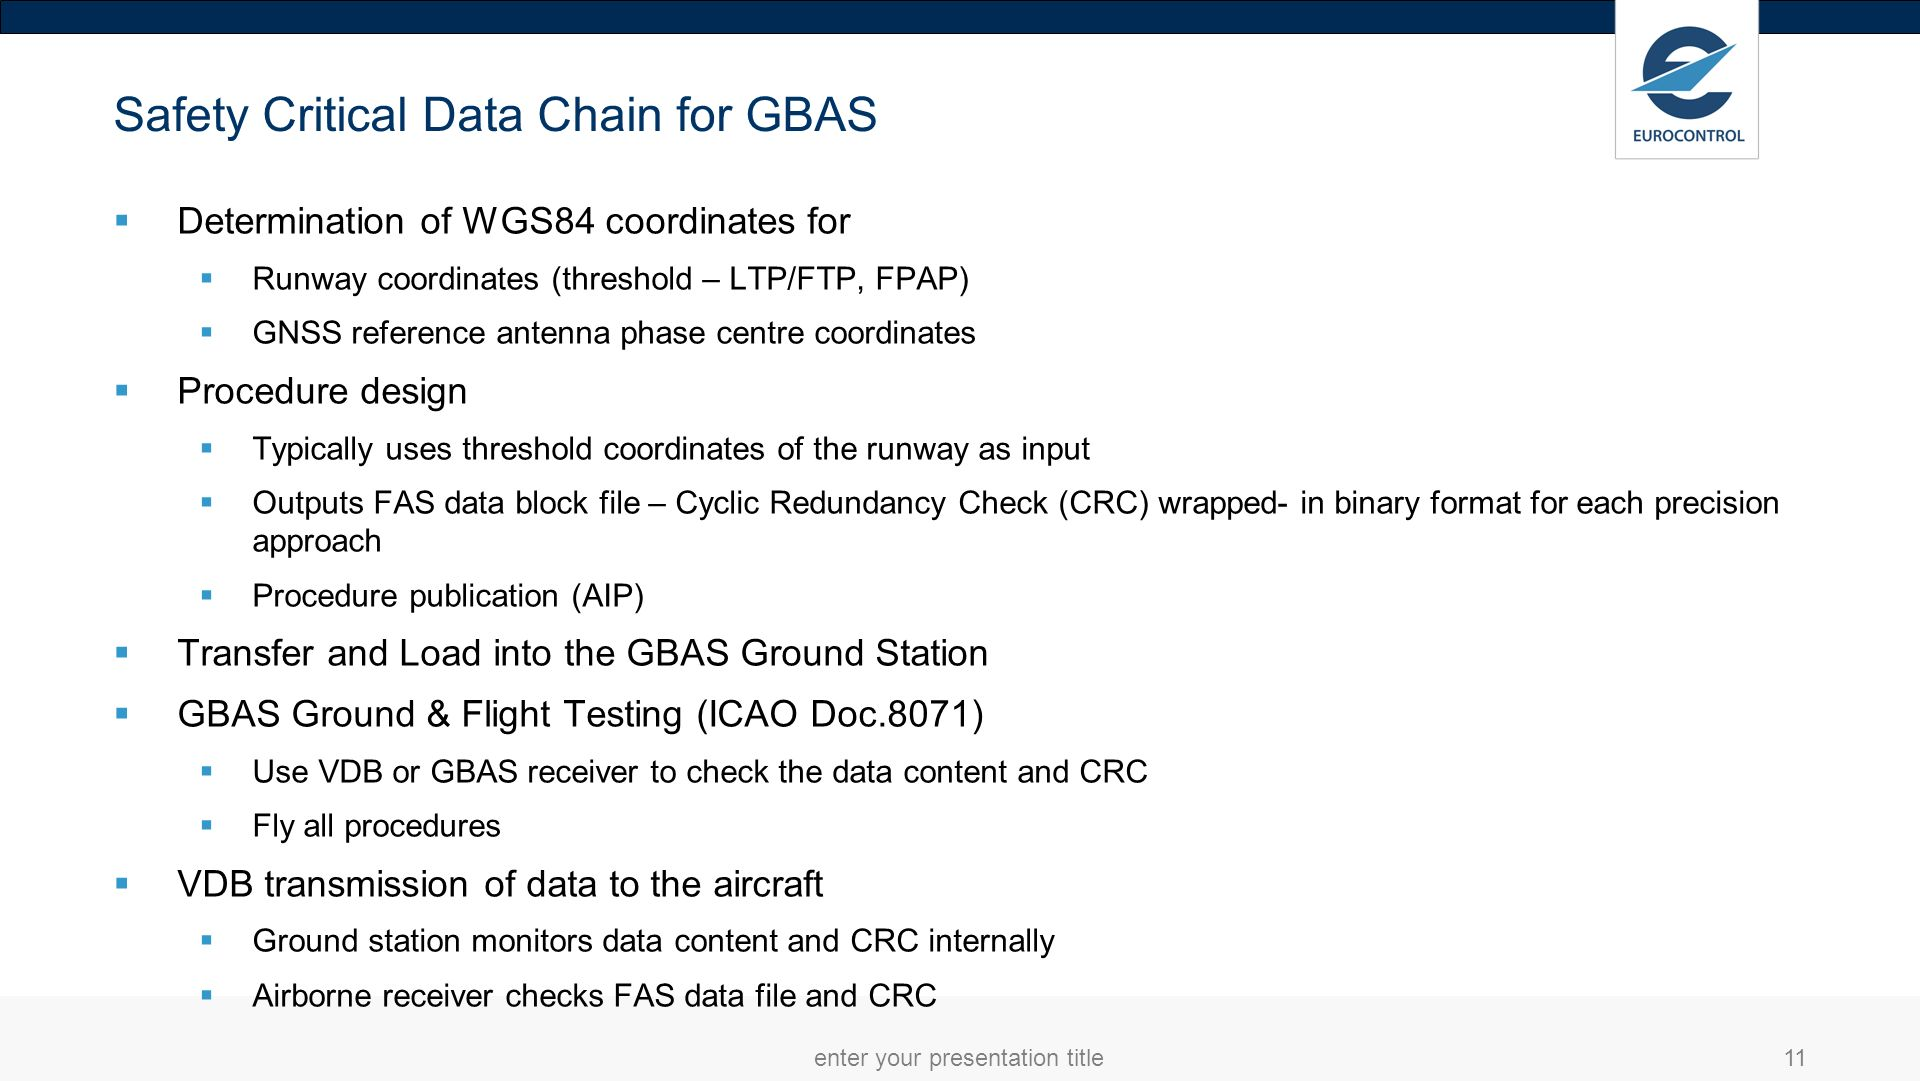 Safety Critical Data Chain for GBAS